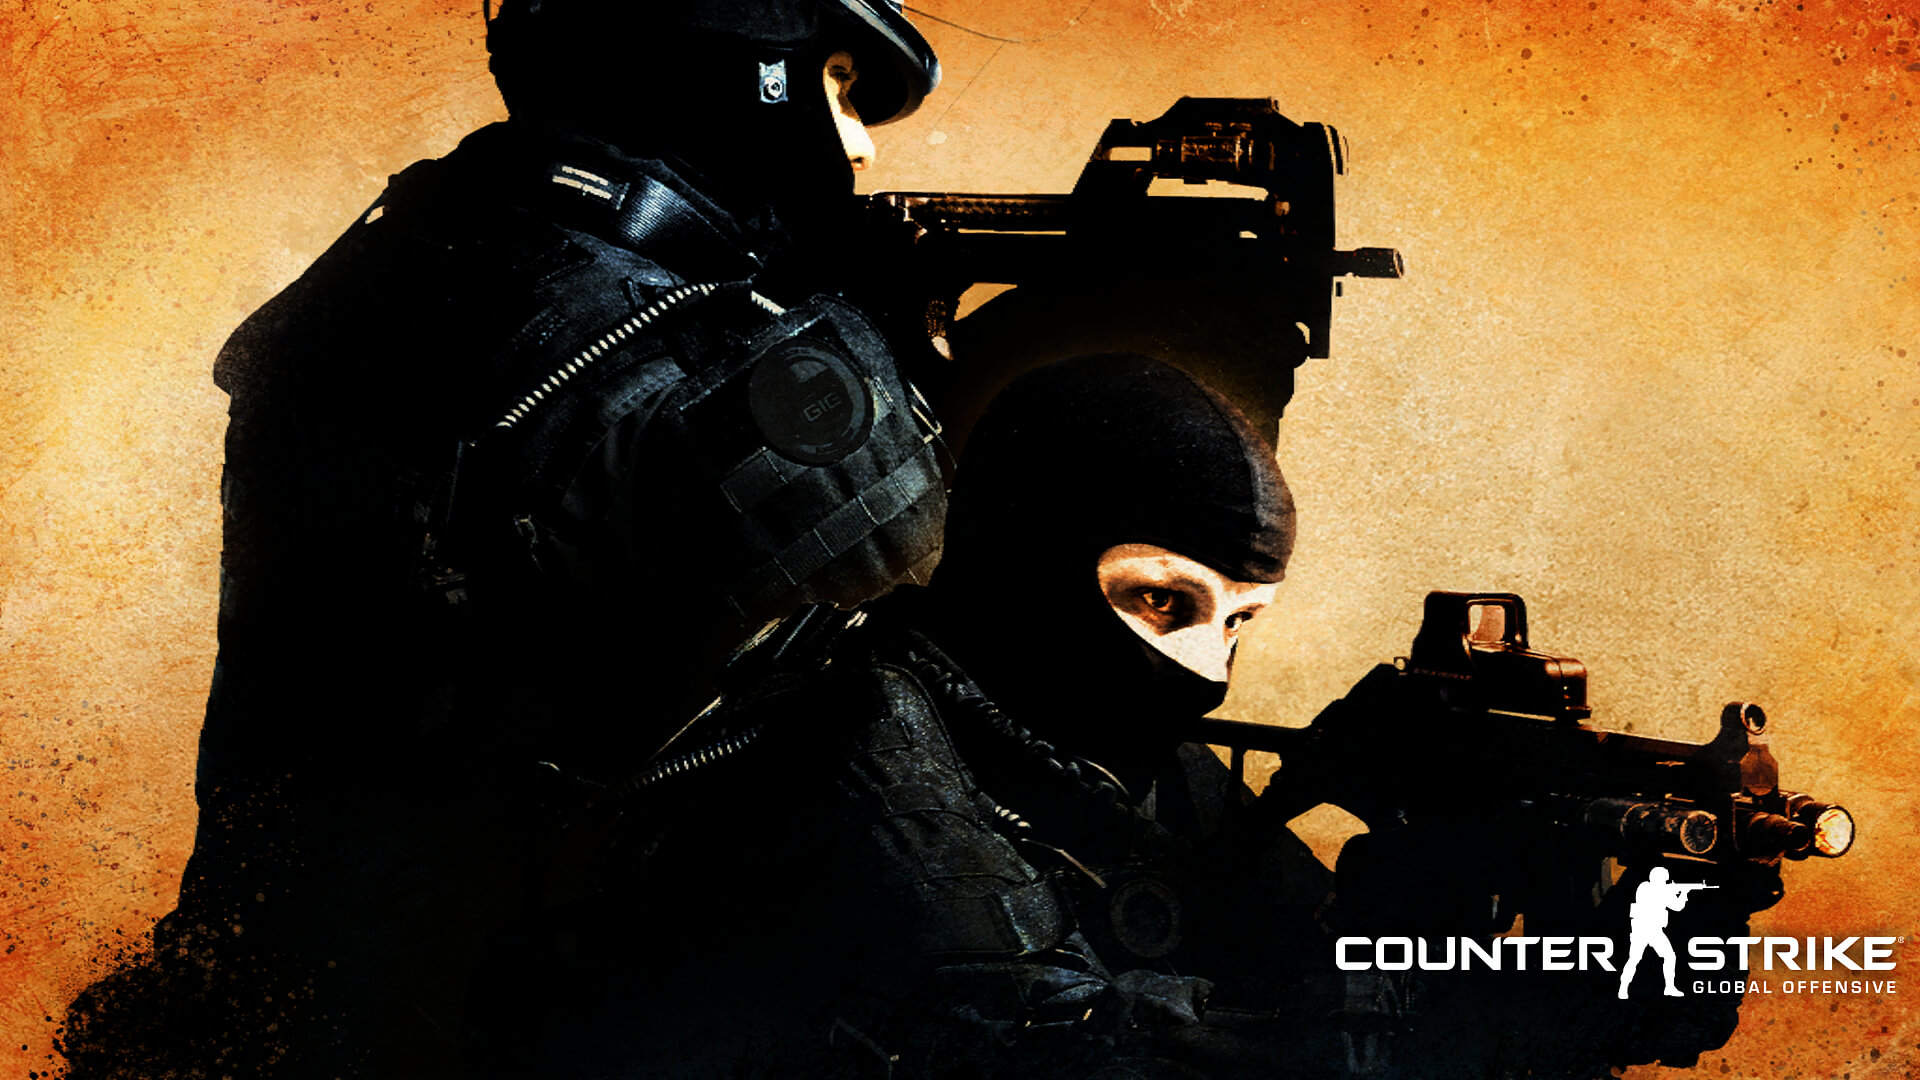 Counter-Strike Adds New Anti-Cheating Measures